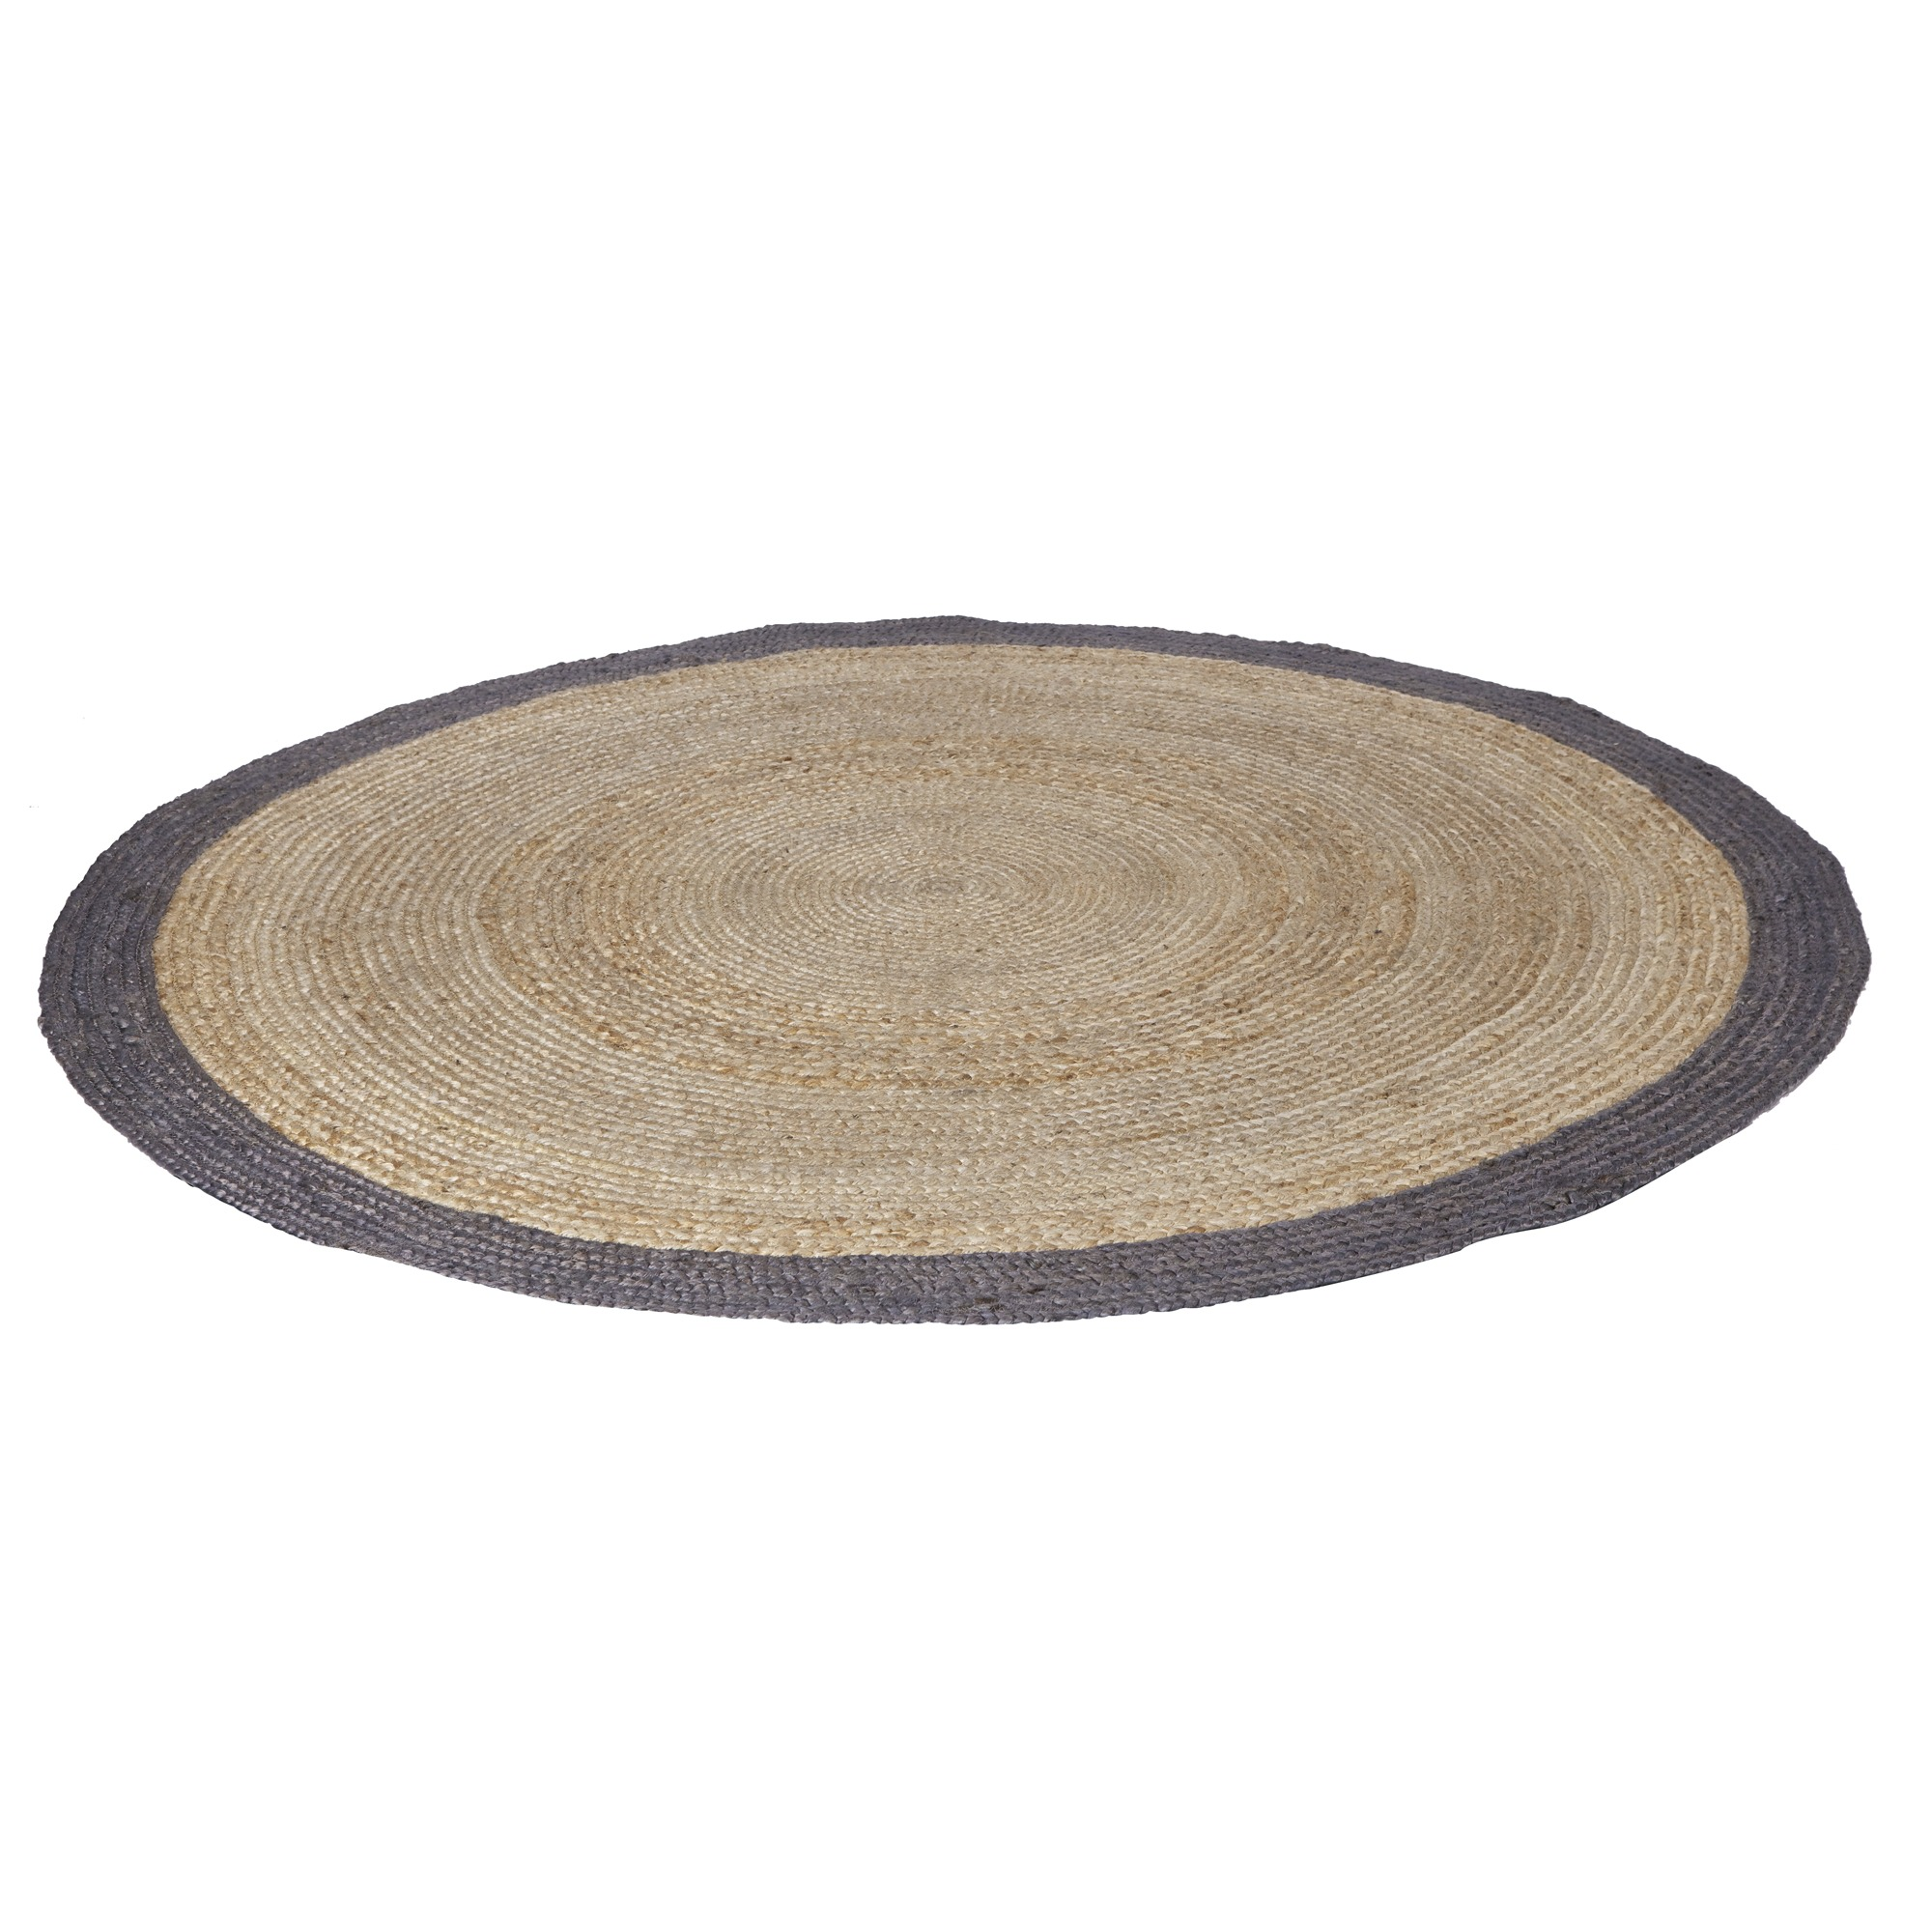 tapis rond en sisal woood 200 cm naturel avec bord gris. Black Bedroom Furniture Sets. Home Design Ideas